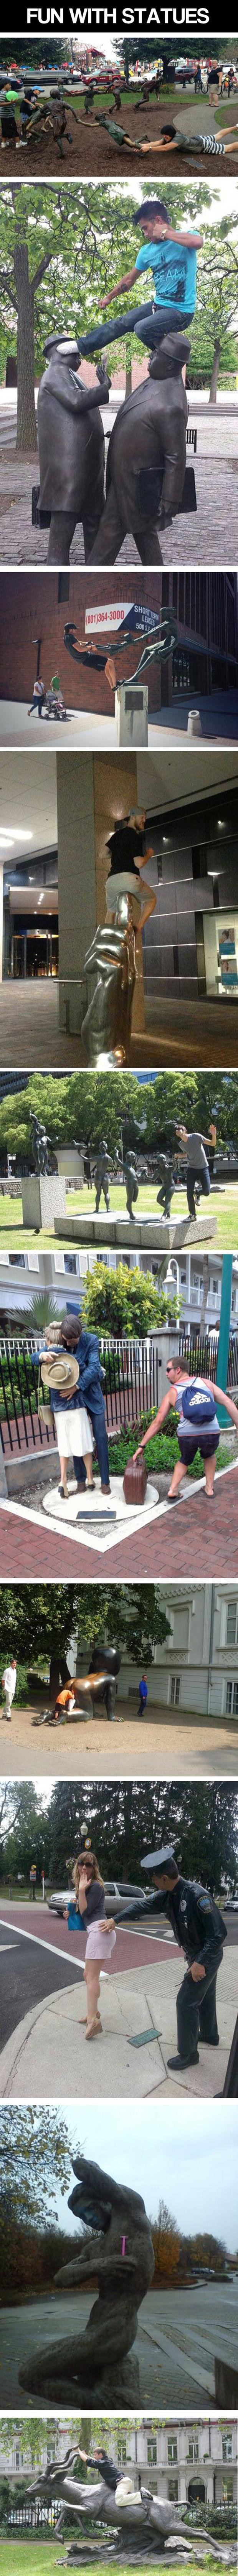 People Got Fun with Statues